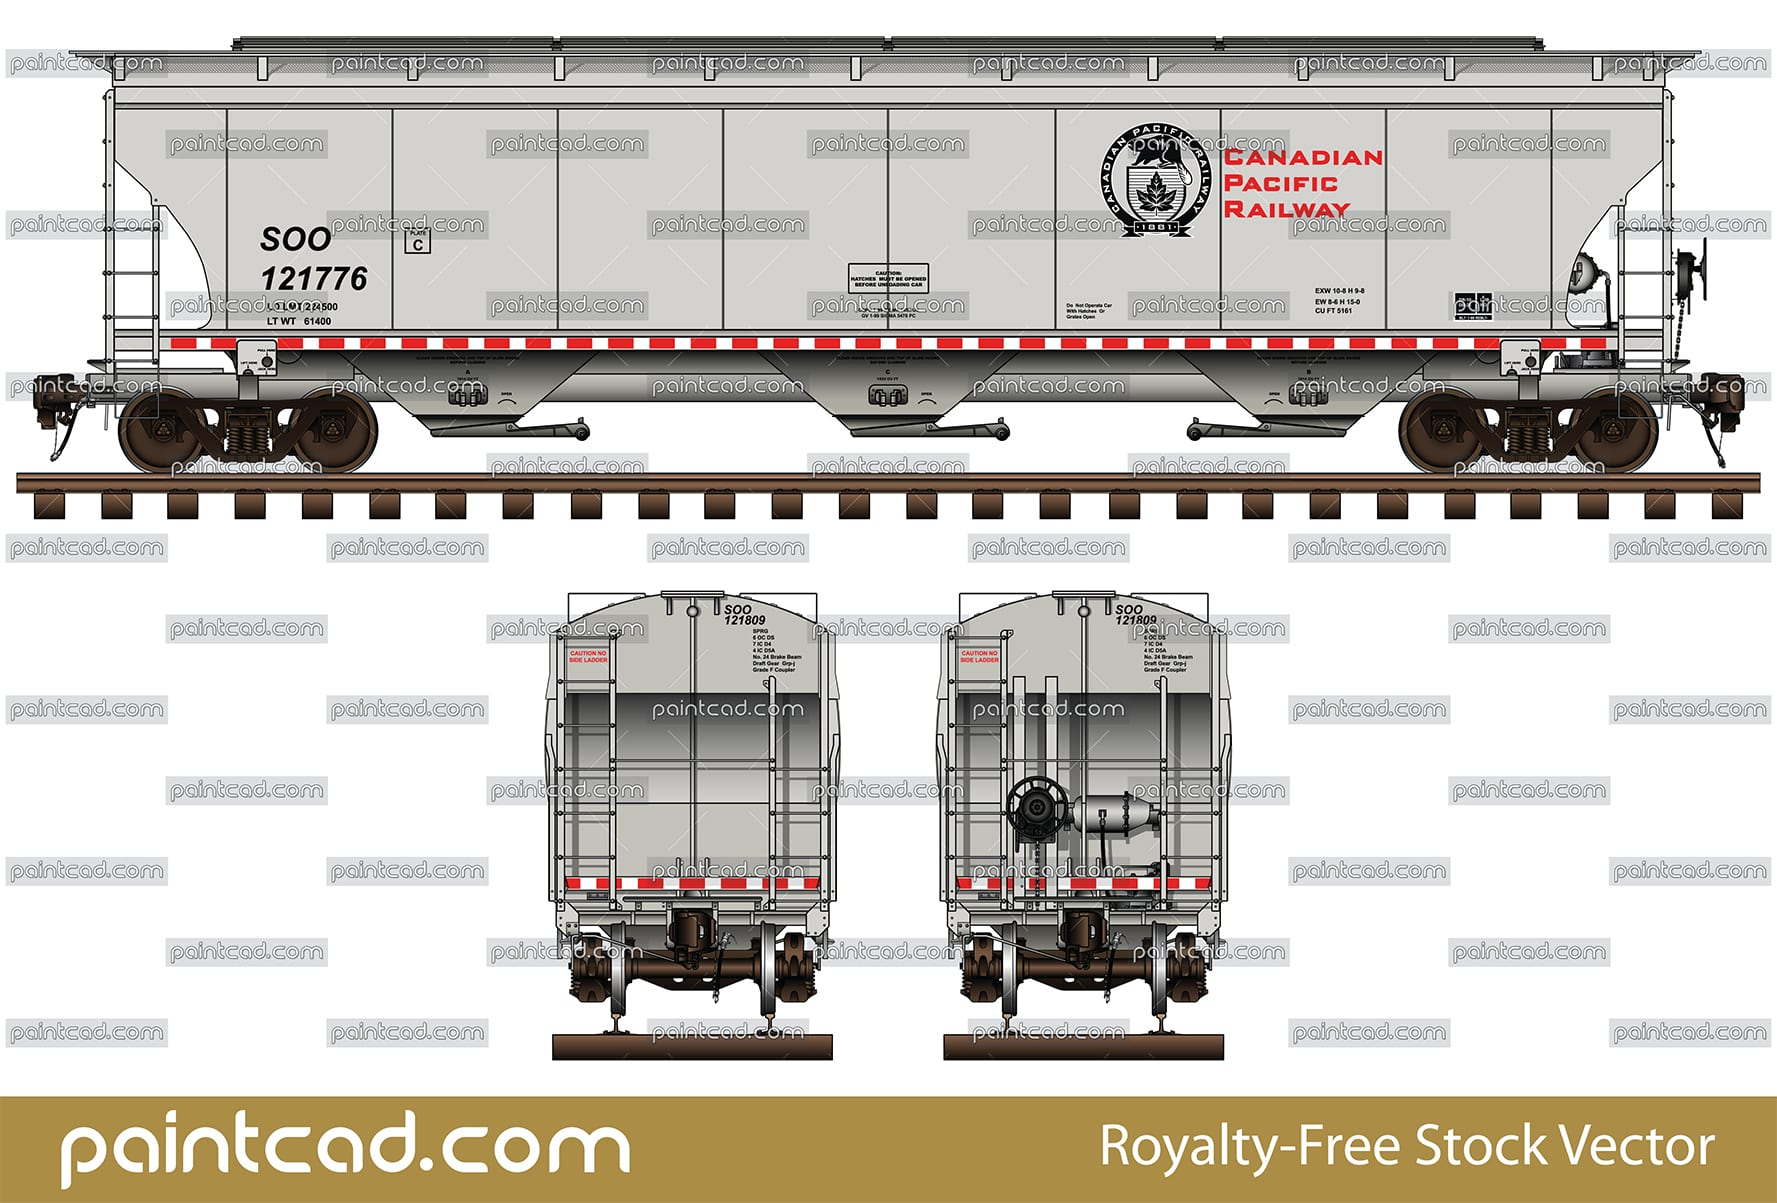 Covered 3-bay hopper car by Canadian Pacific Railway - CPR - vector illustration